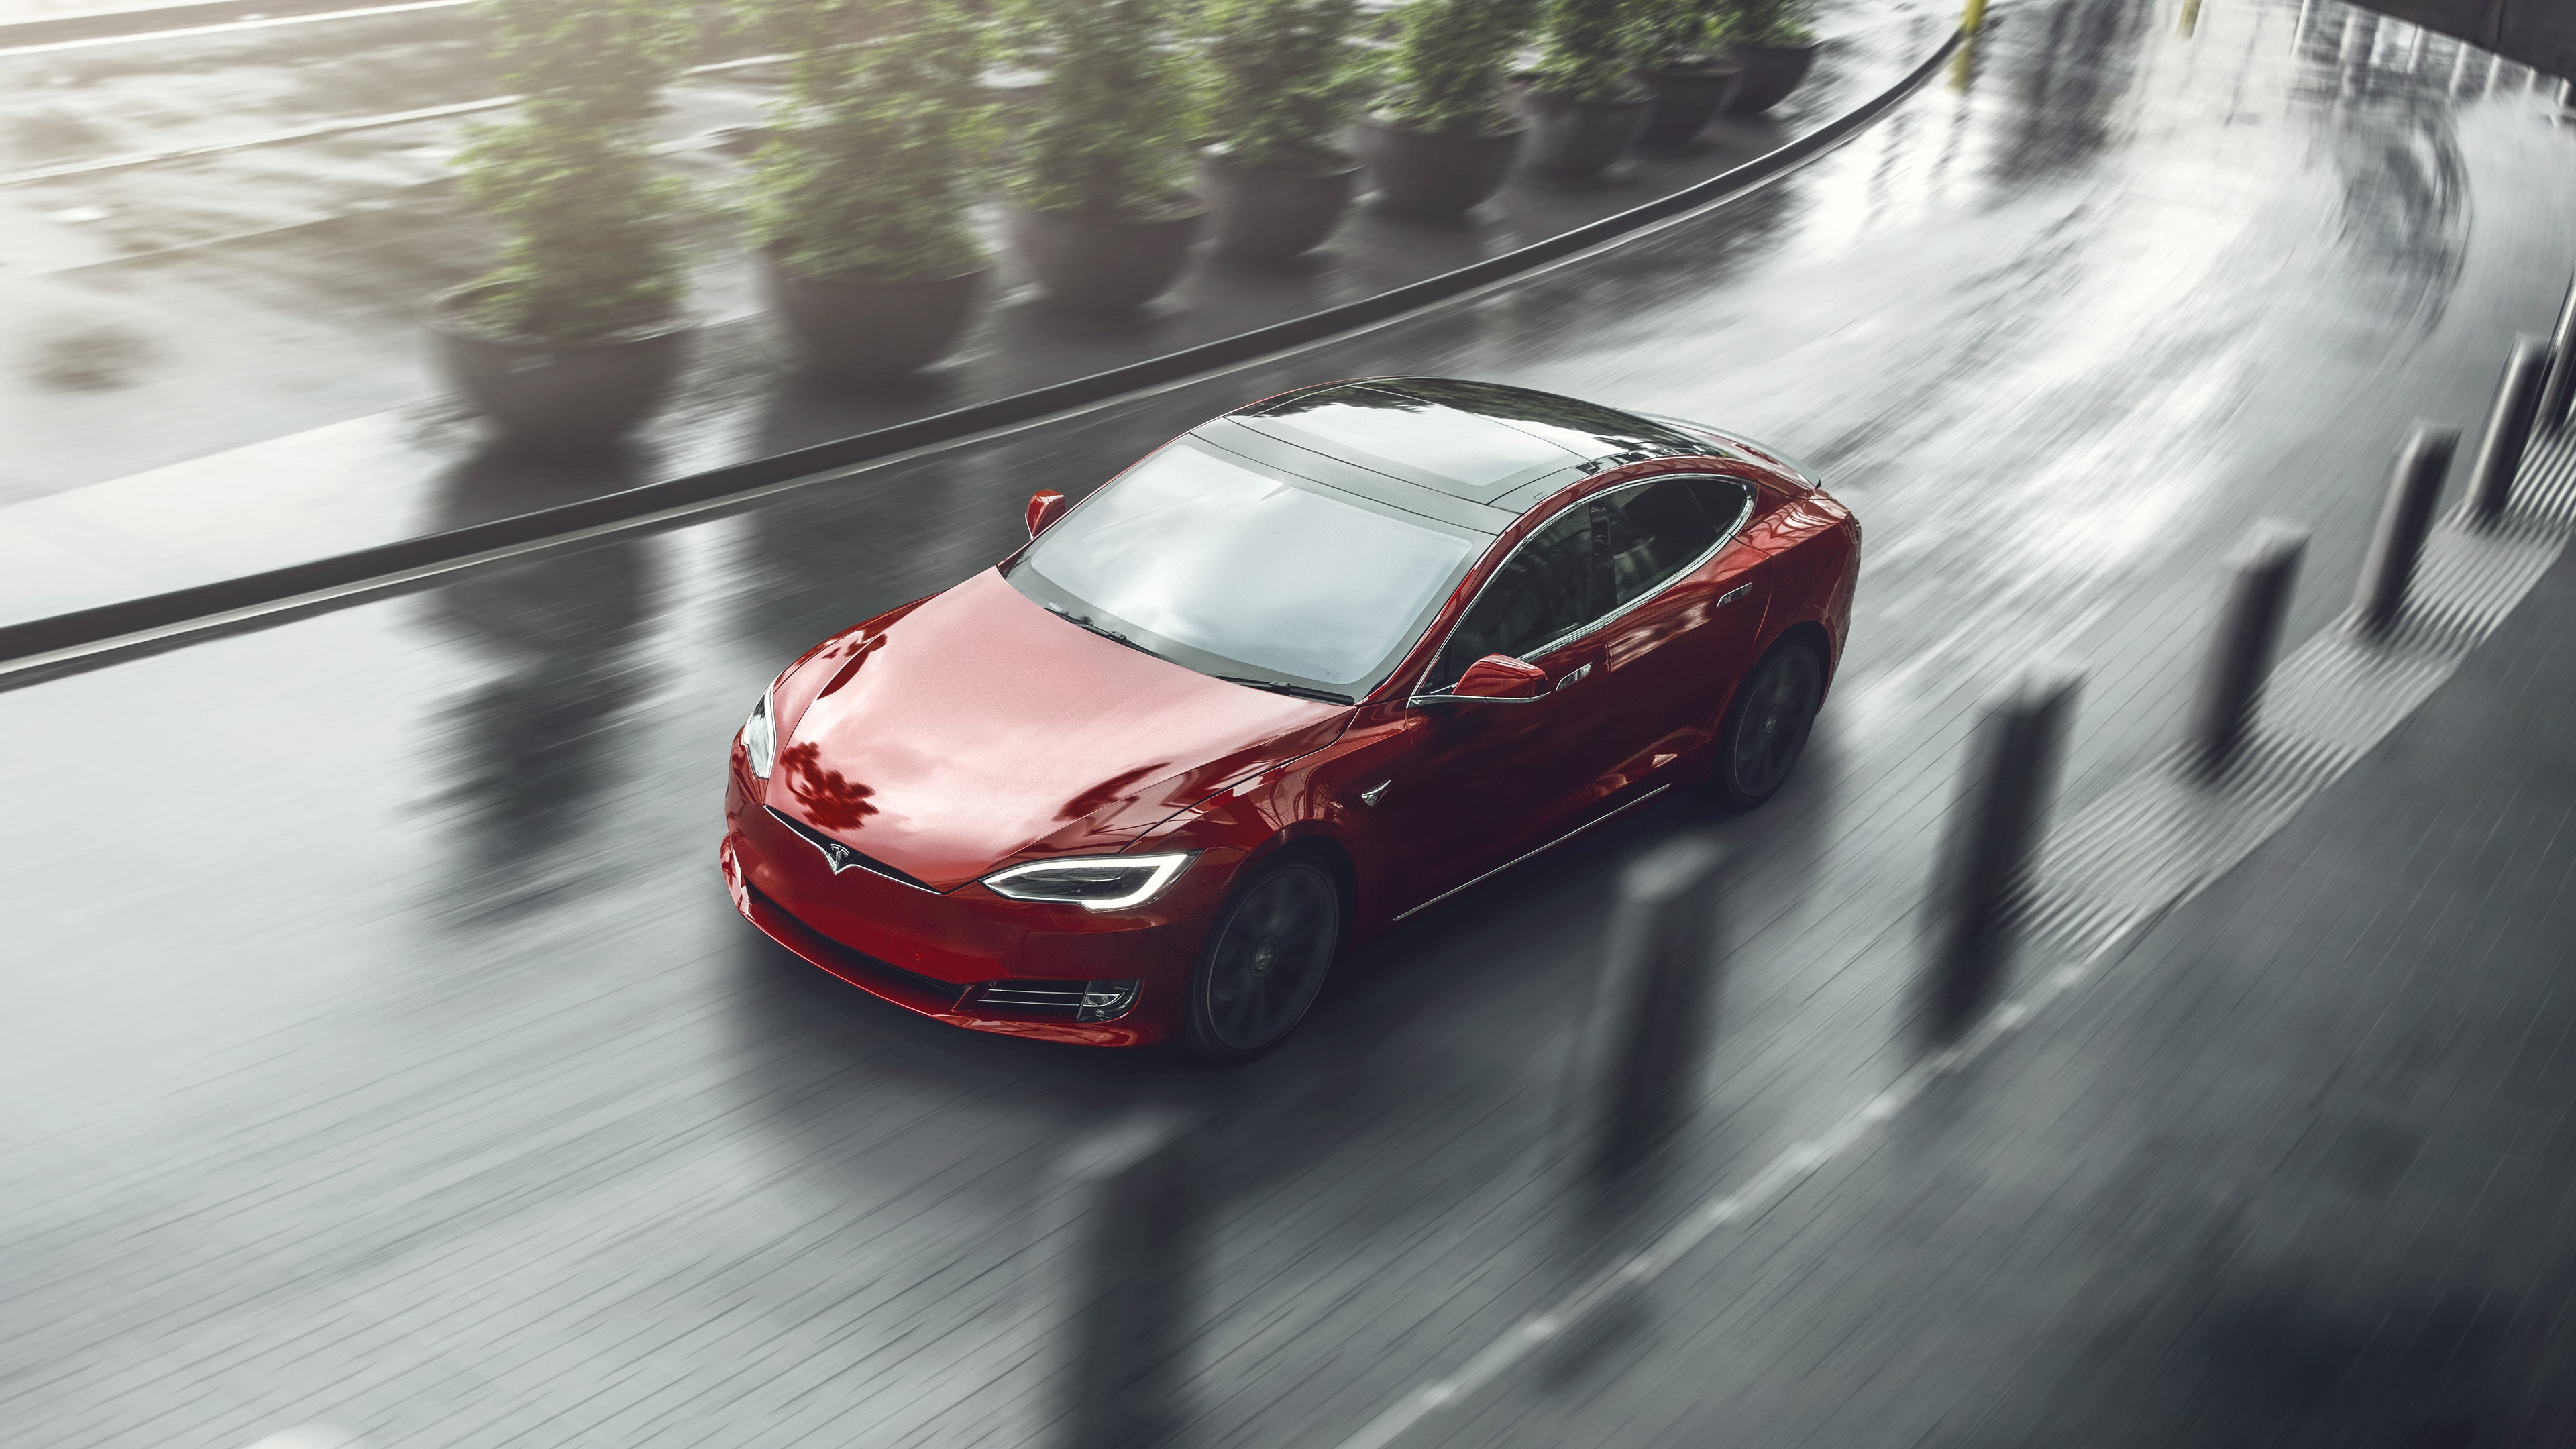 Elon Musk Just Bought Even More Tesla Stock   The Motley Fool